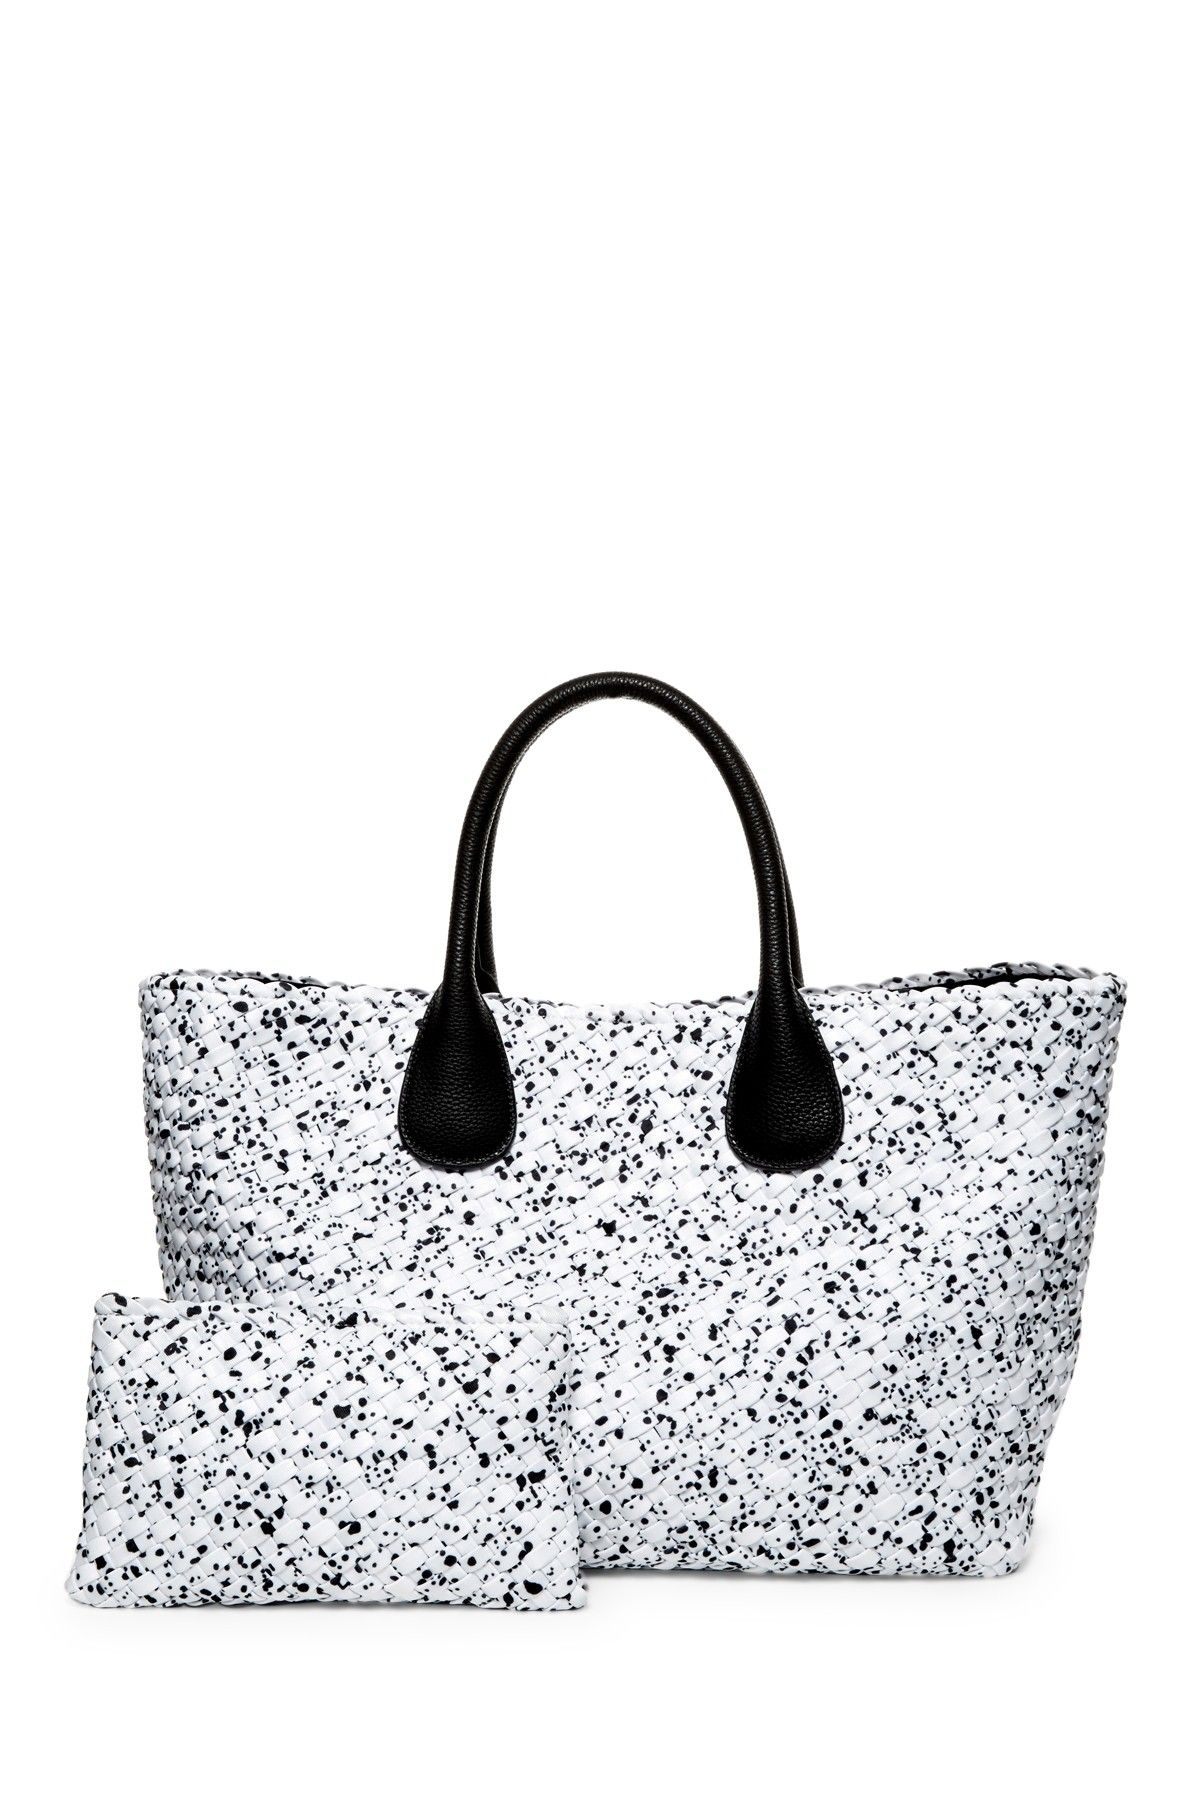 e3029d418a8717 Kensington Small Tote Nordstrom Rack, Tote Bag, Bag, Carry Bag, Tote Bags